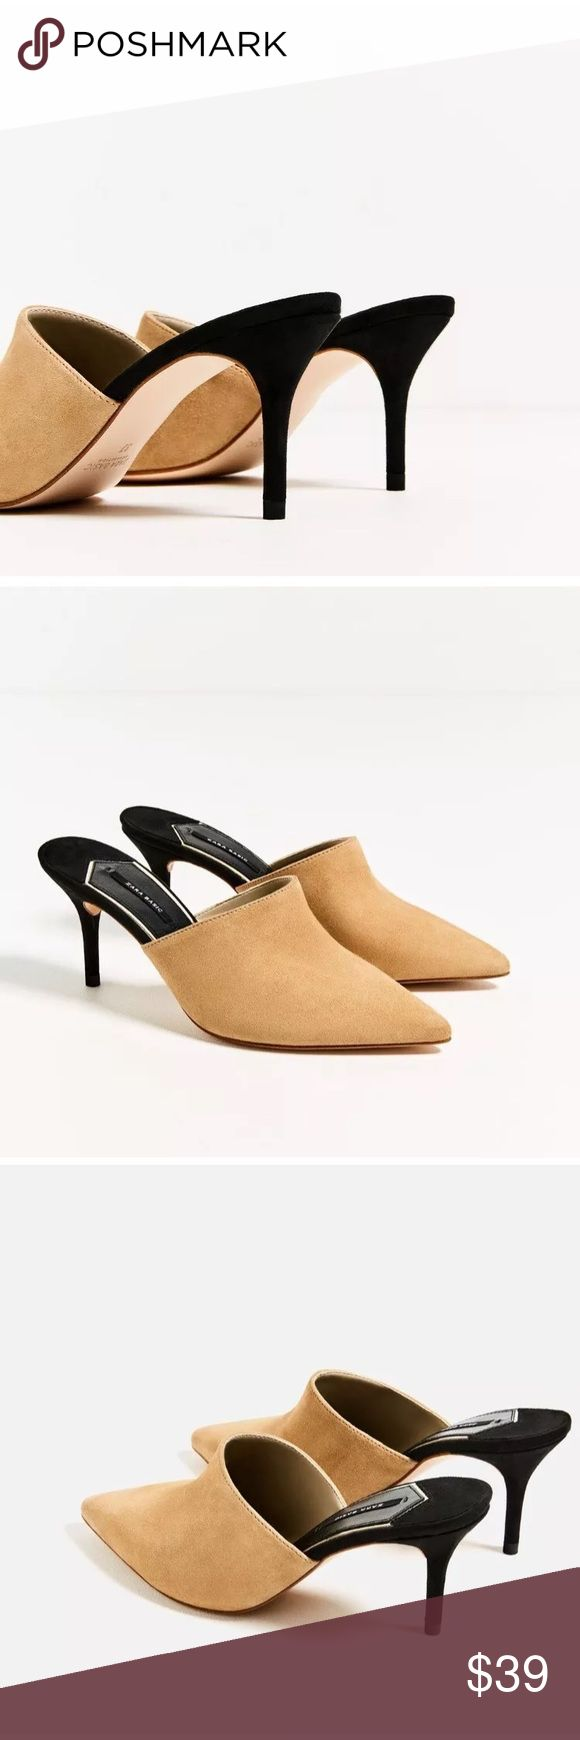 Zara Leather Backless High Heel Mules 💯% real leather! Comfortable and easy to wear! Zara Shoes Mules & Clogs